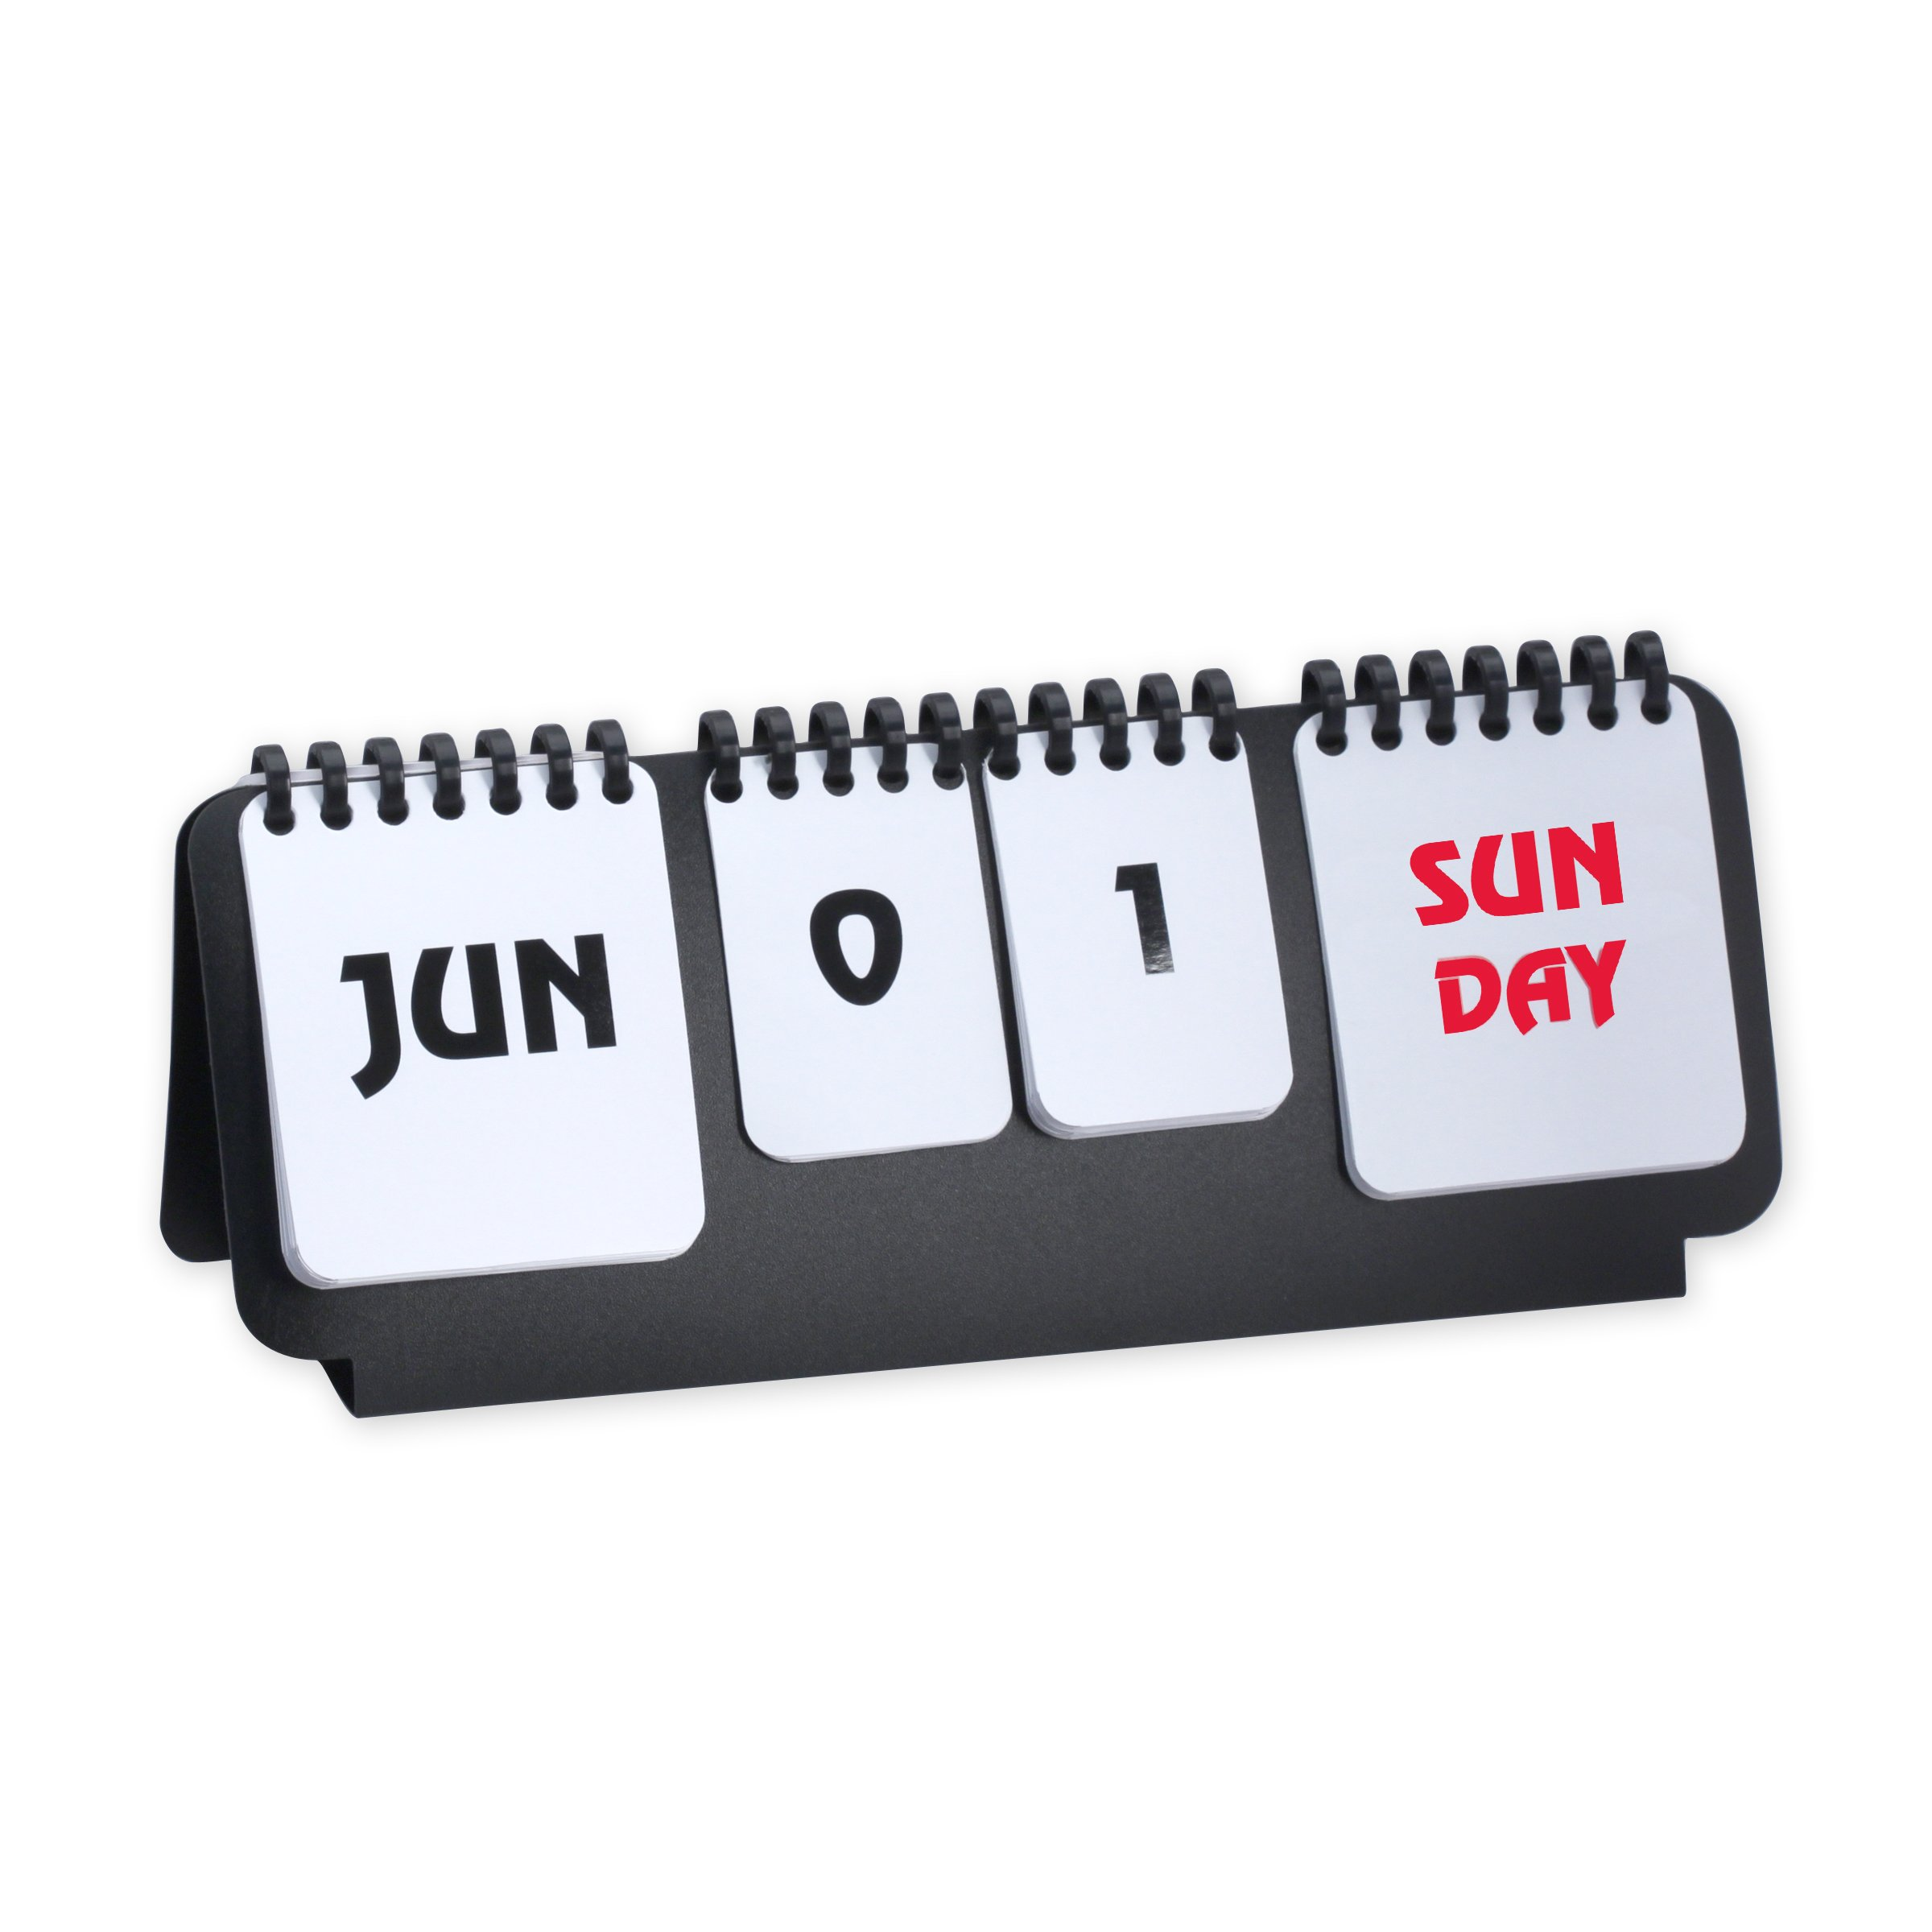 Flip Chart Perpetual Calendar Desk Accessory Black/White Color